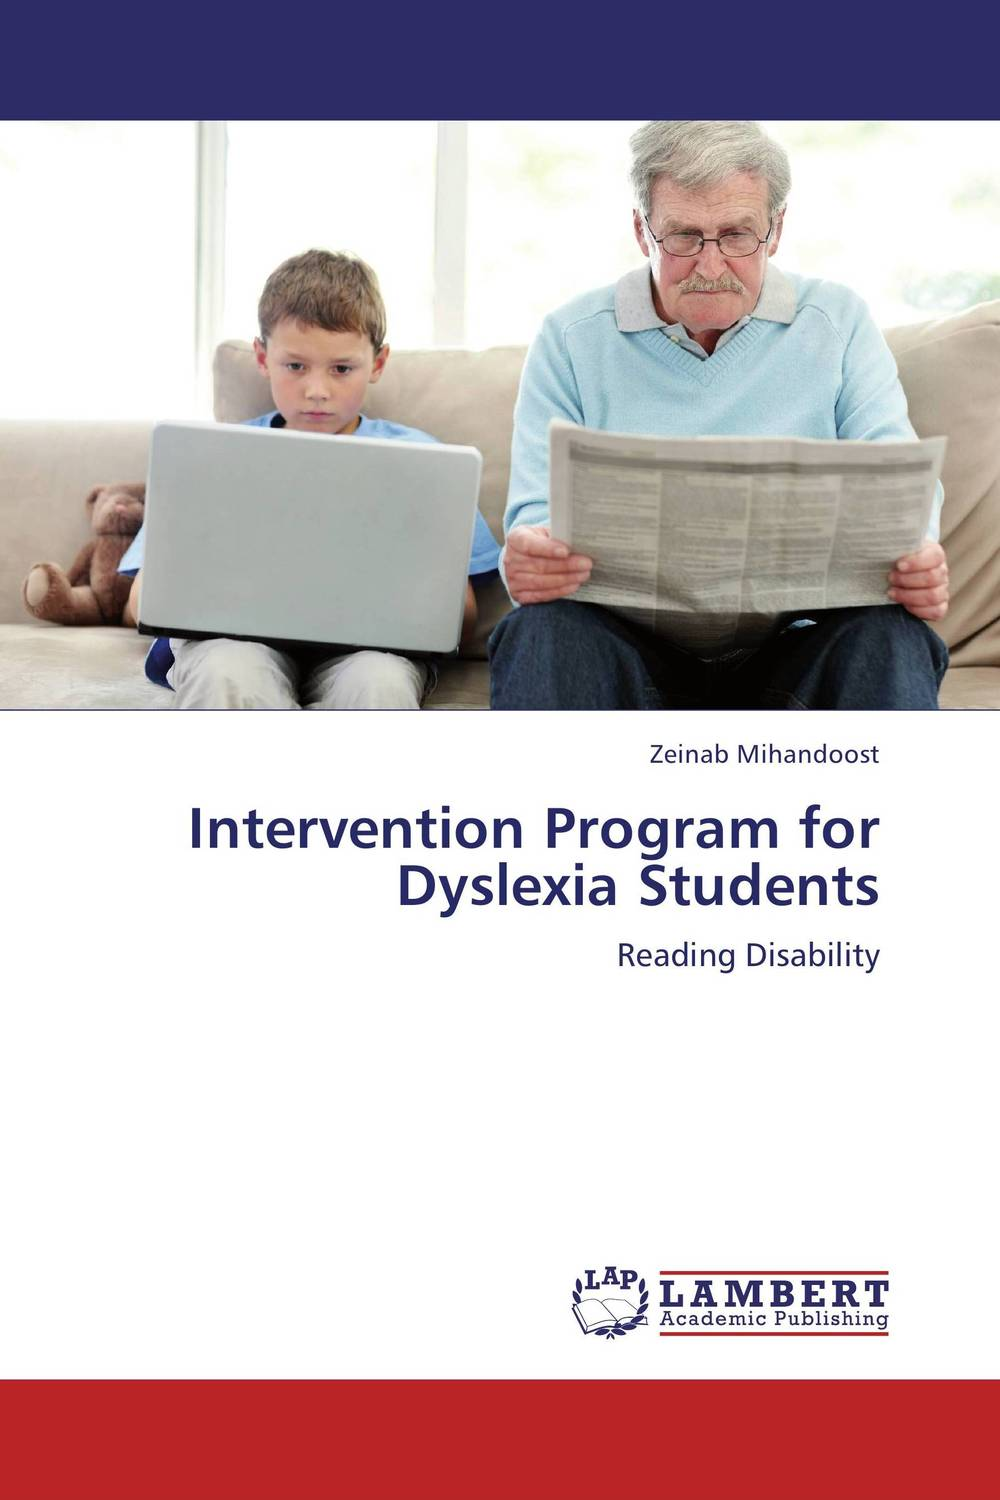 Intervention Program for Dyslexia Students reading